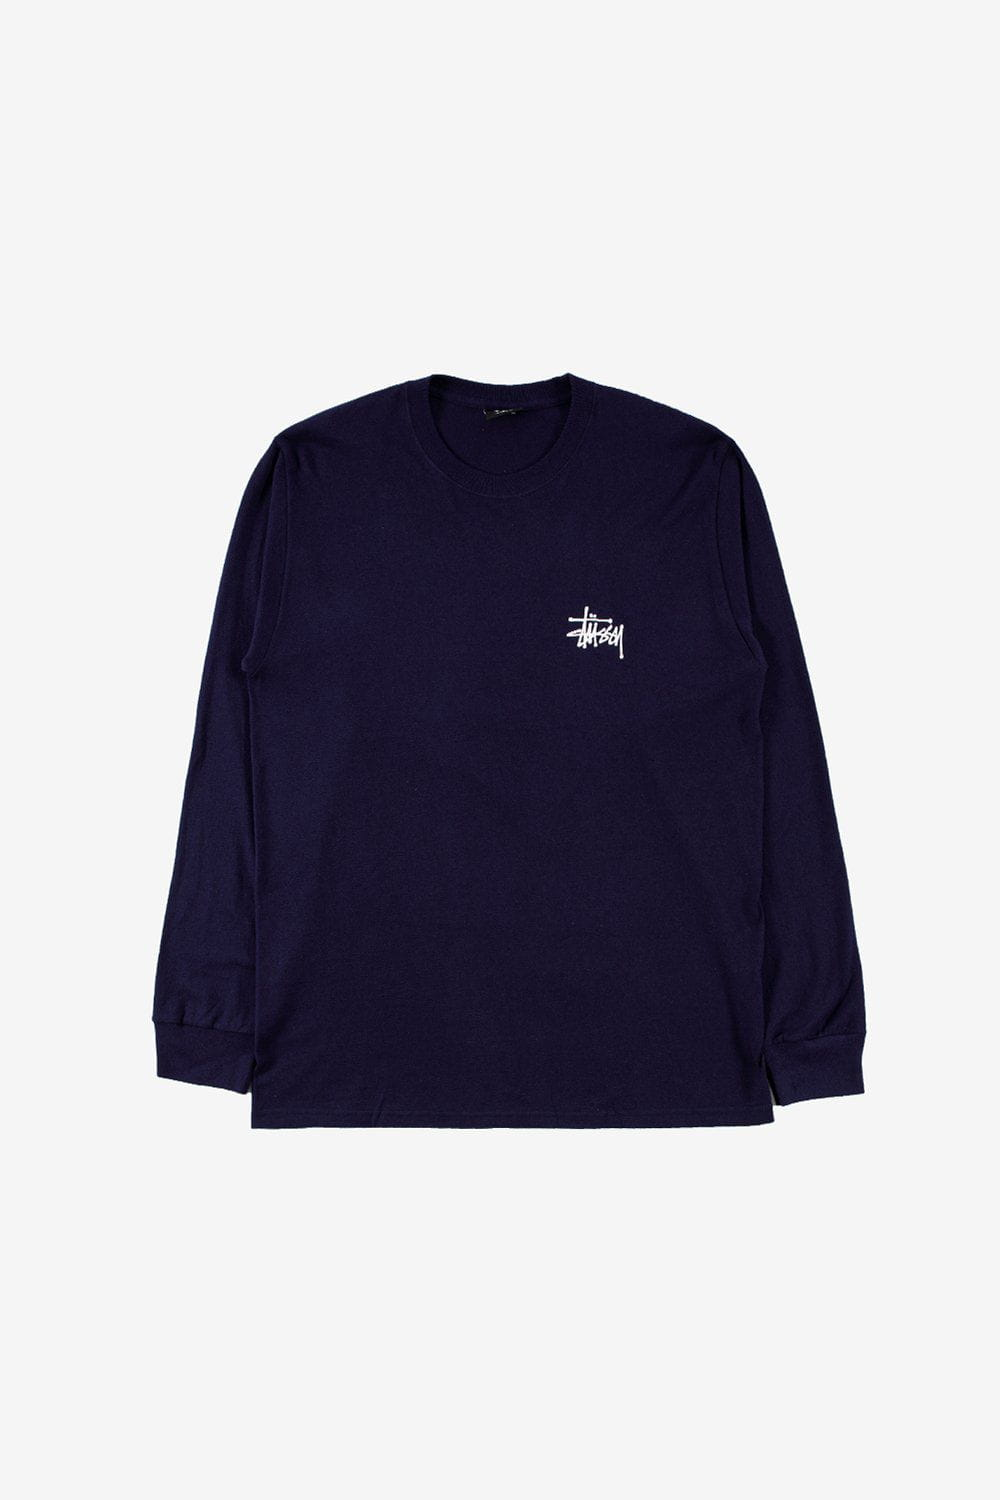 Stussy Apparel Basic Long Sleeve Tee